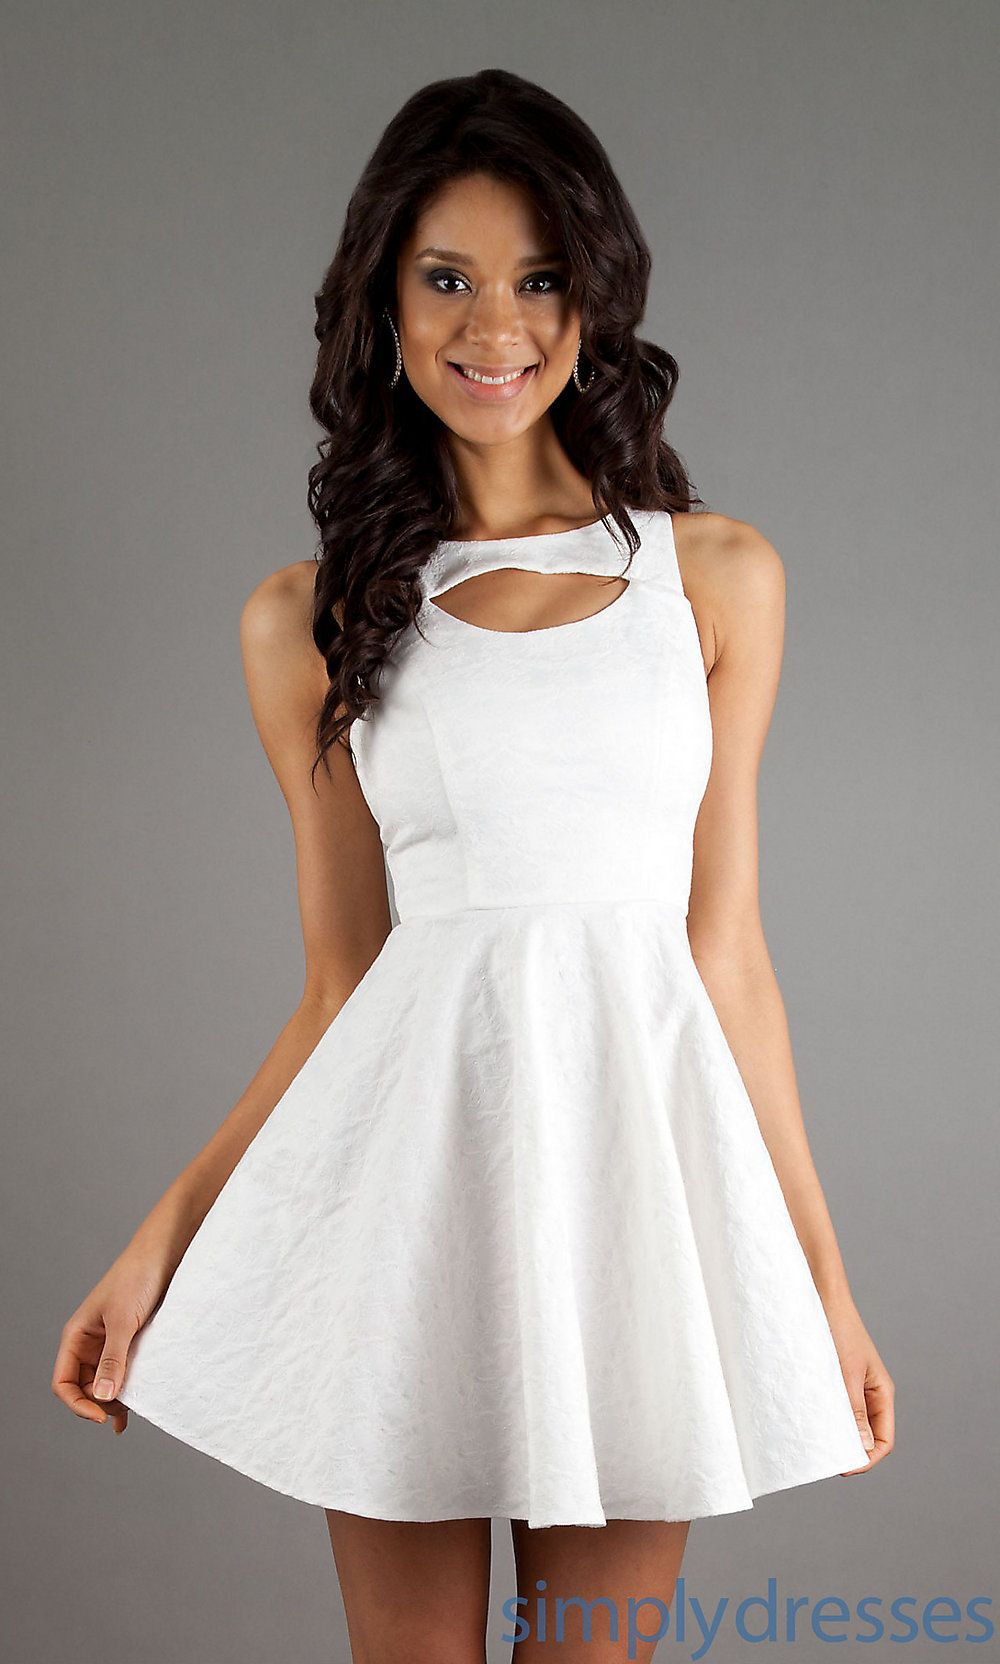 XO-6433JQB3 - Short Ivory-White Casual Dress | Receptions, Bridal ...